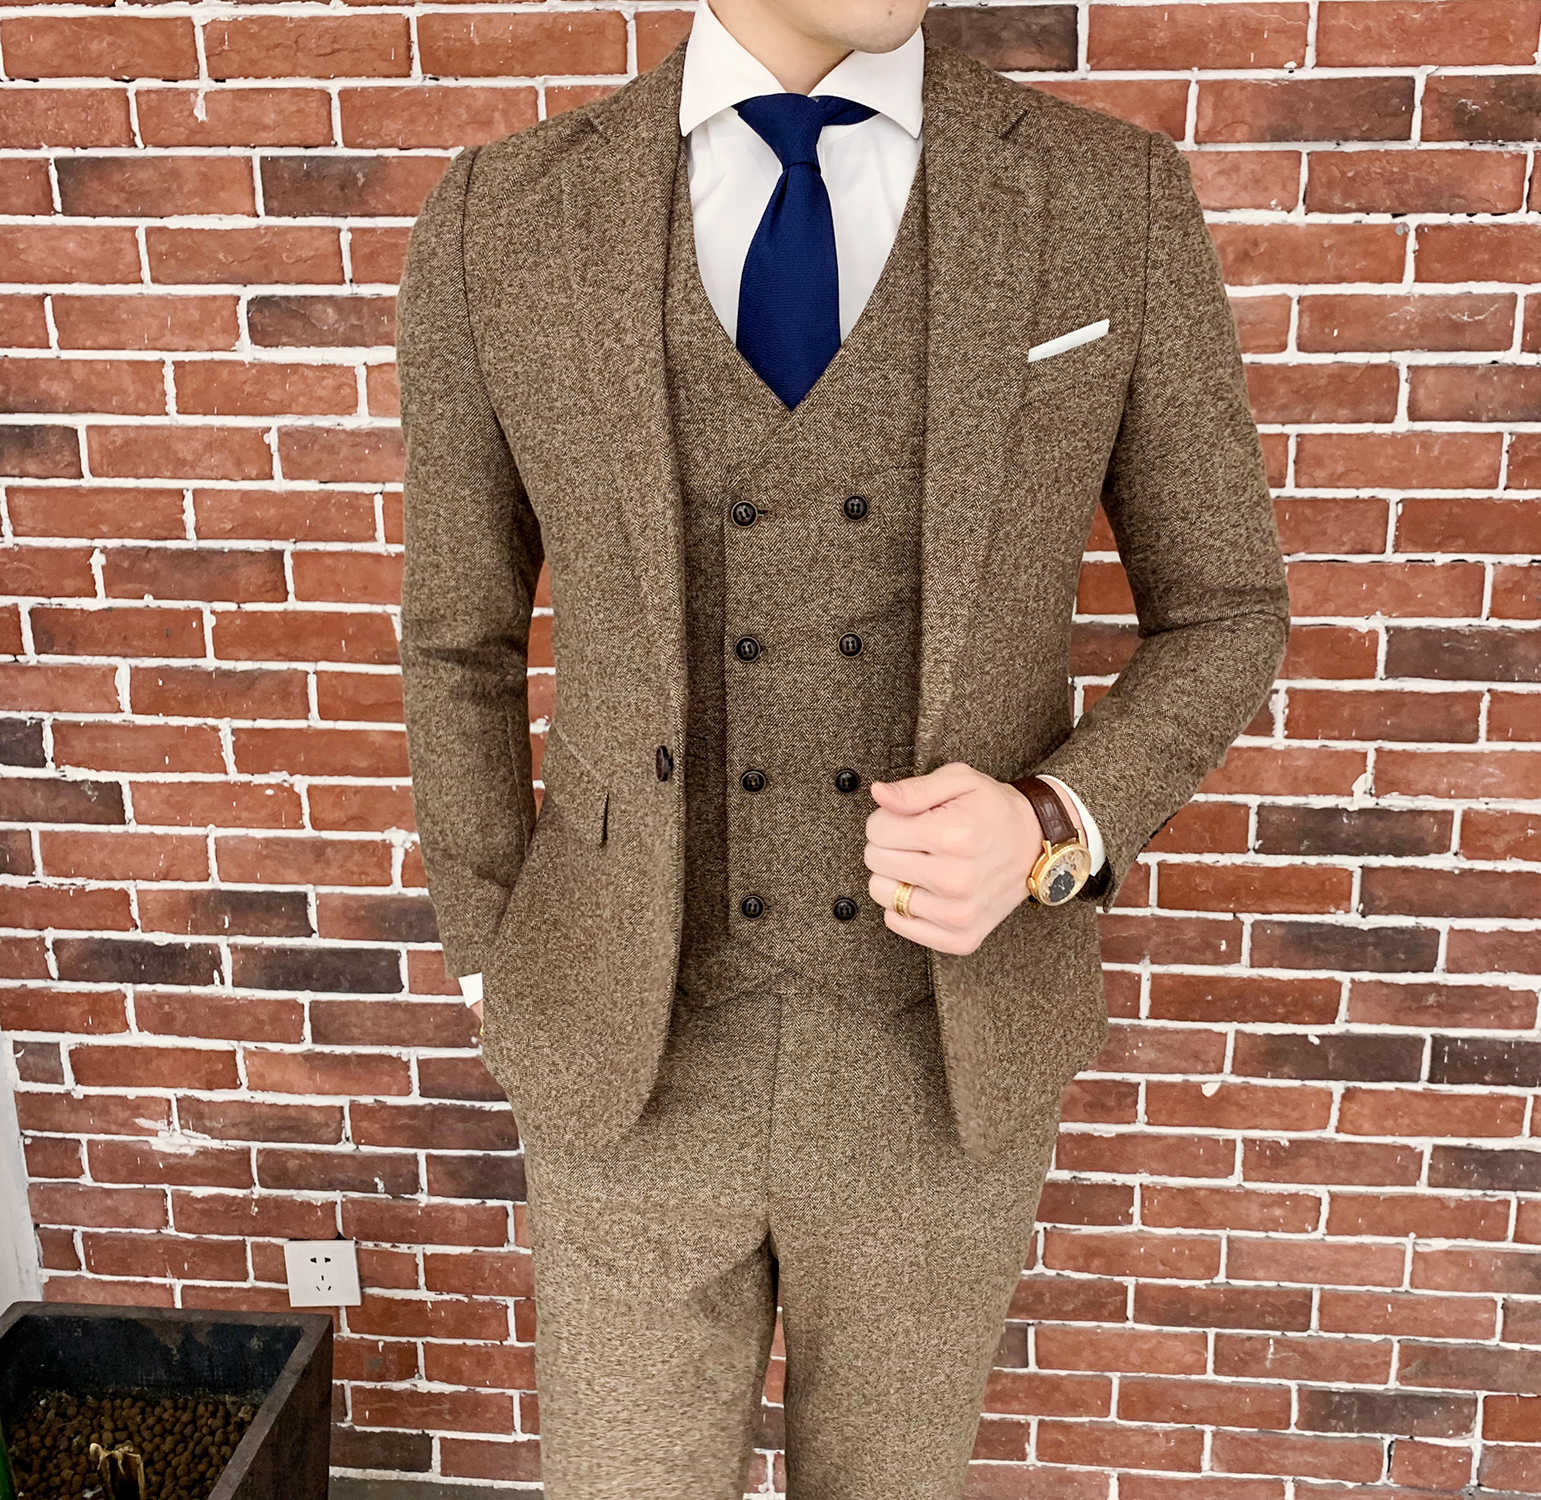 Brown Herringbone Suit Designer Costume Mariage Homme Party Suits Tuxedo Groom Wedding Men SuitTrajes De <font><b>Hombre</b></font> Para Fiesta <font><b>6xl</b></font> image